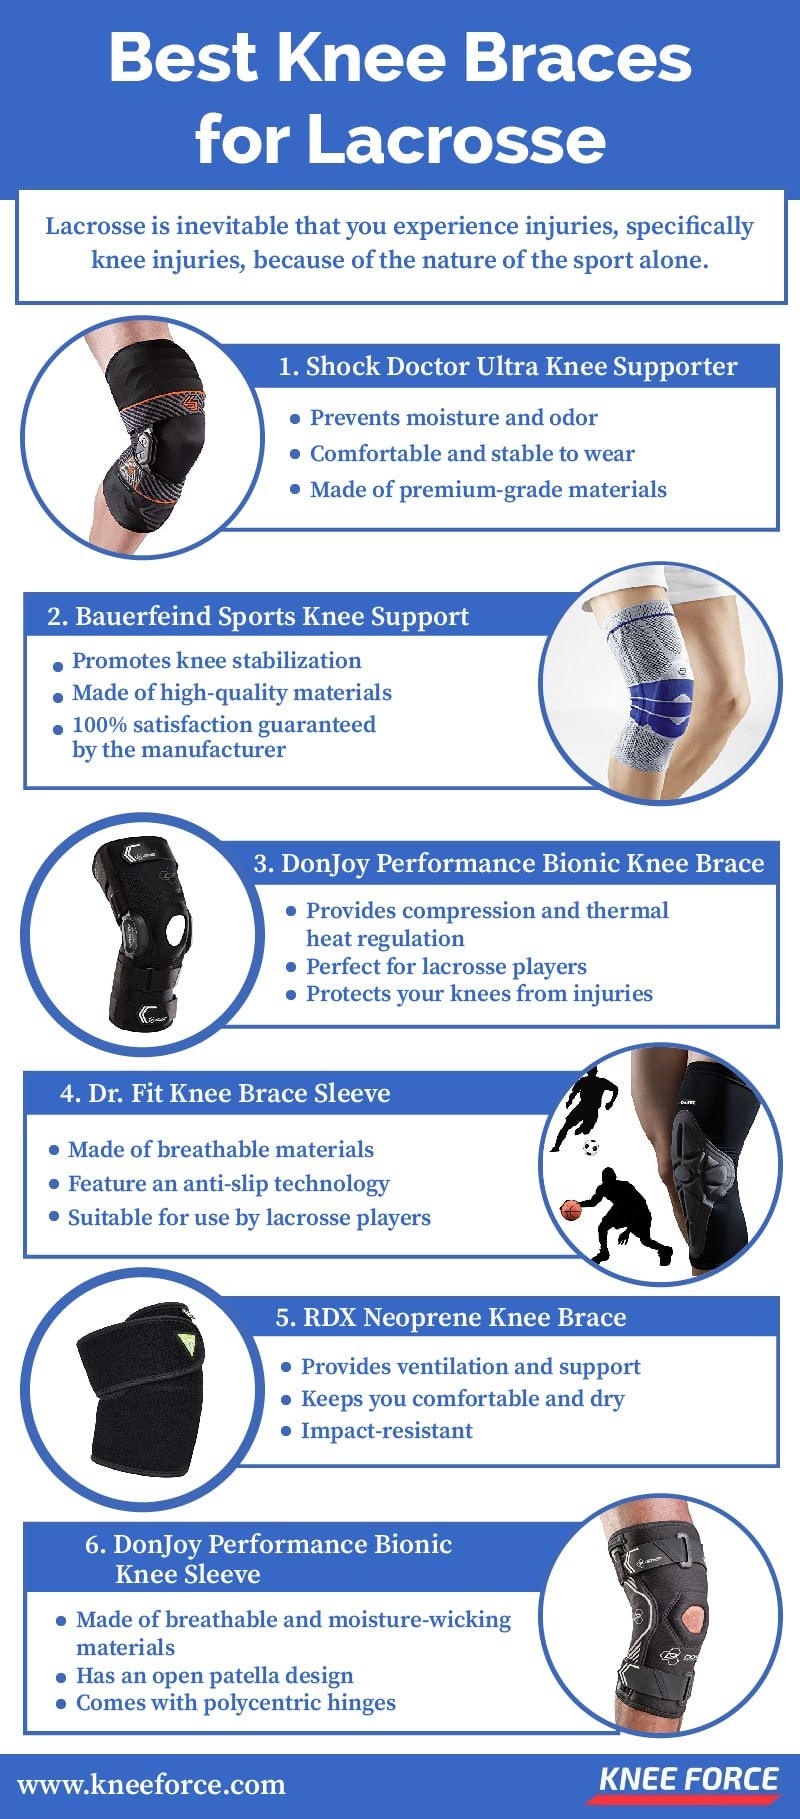 These injuries normally occur from pivoting, cutting, and getting in contact with another player while playing lacrosse.